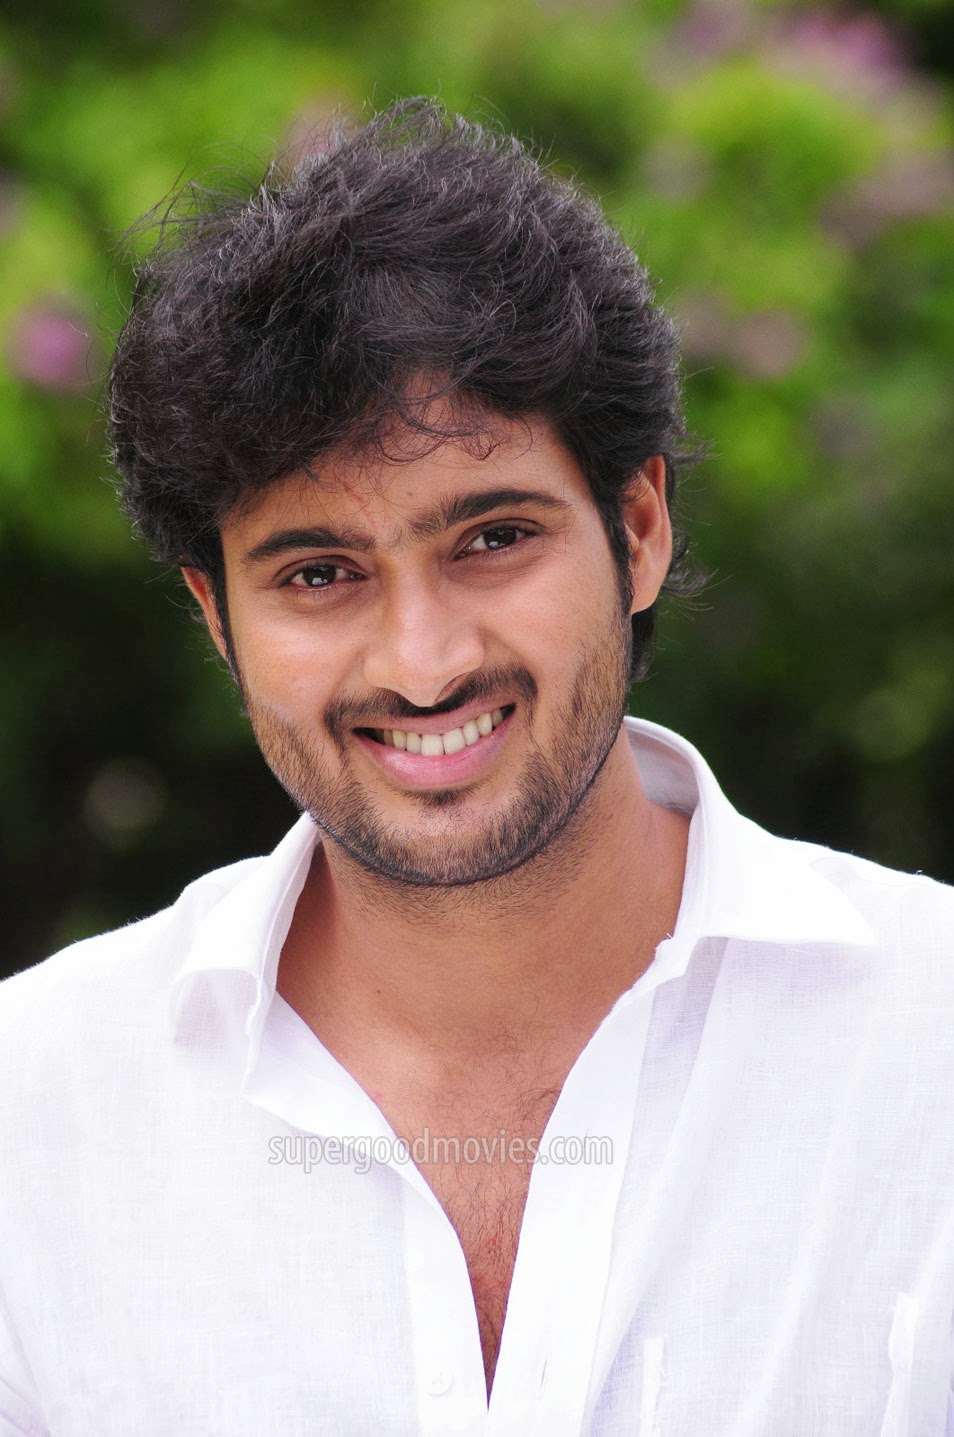 Uday kiran picture